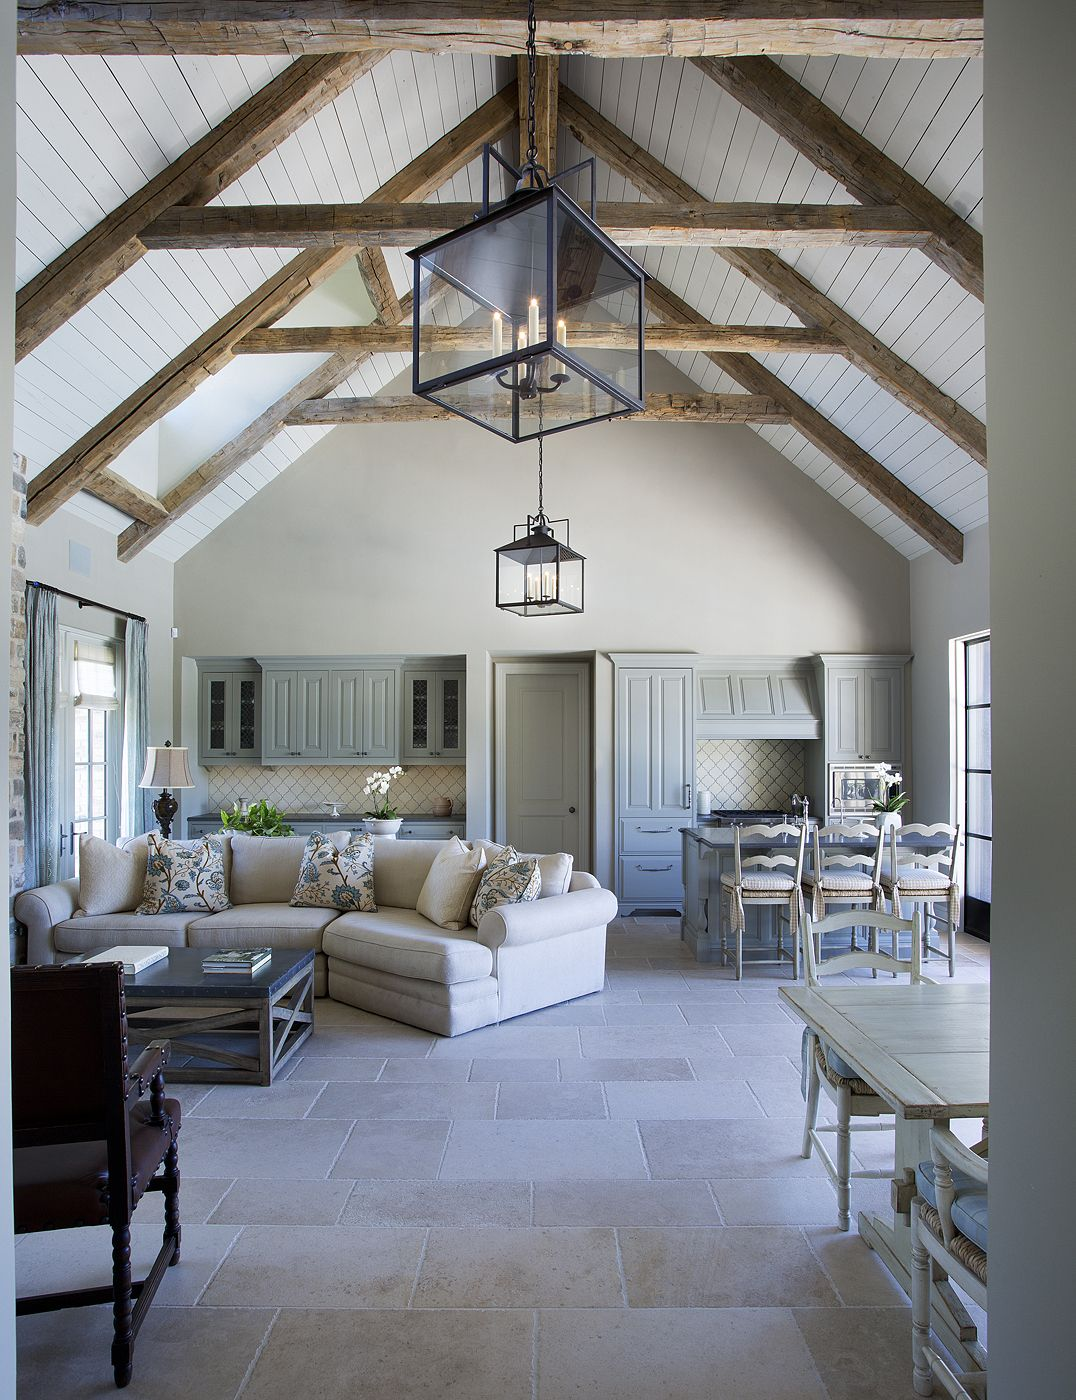 Cathedral Ceilings With Exposed Beams. White Washed, Bright Interior. Stone  Floor.